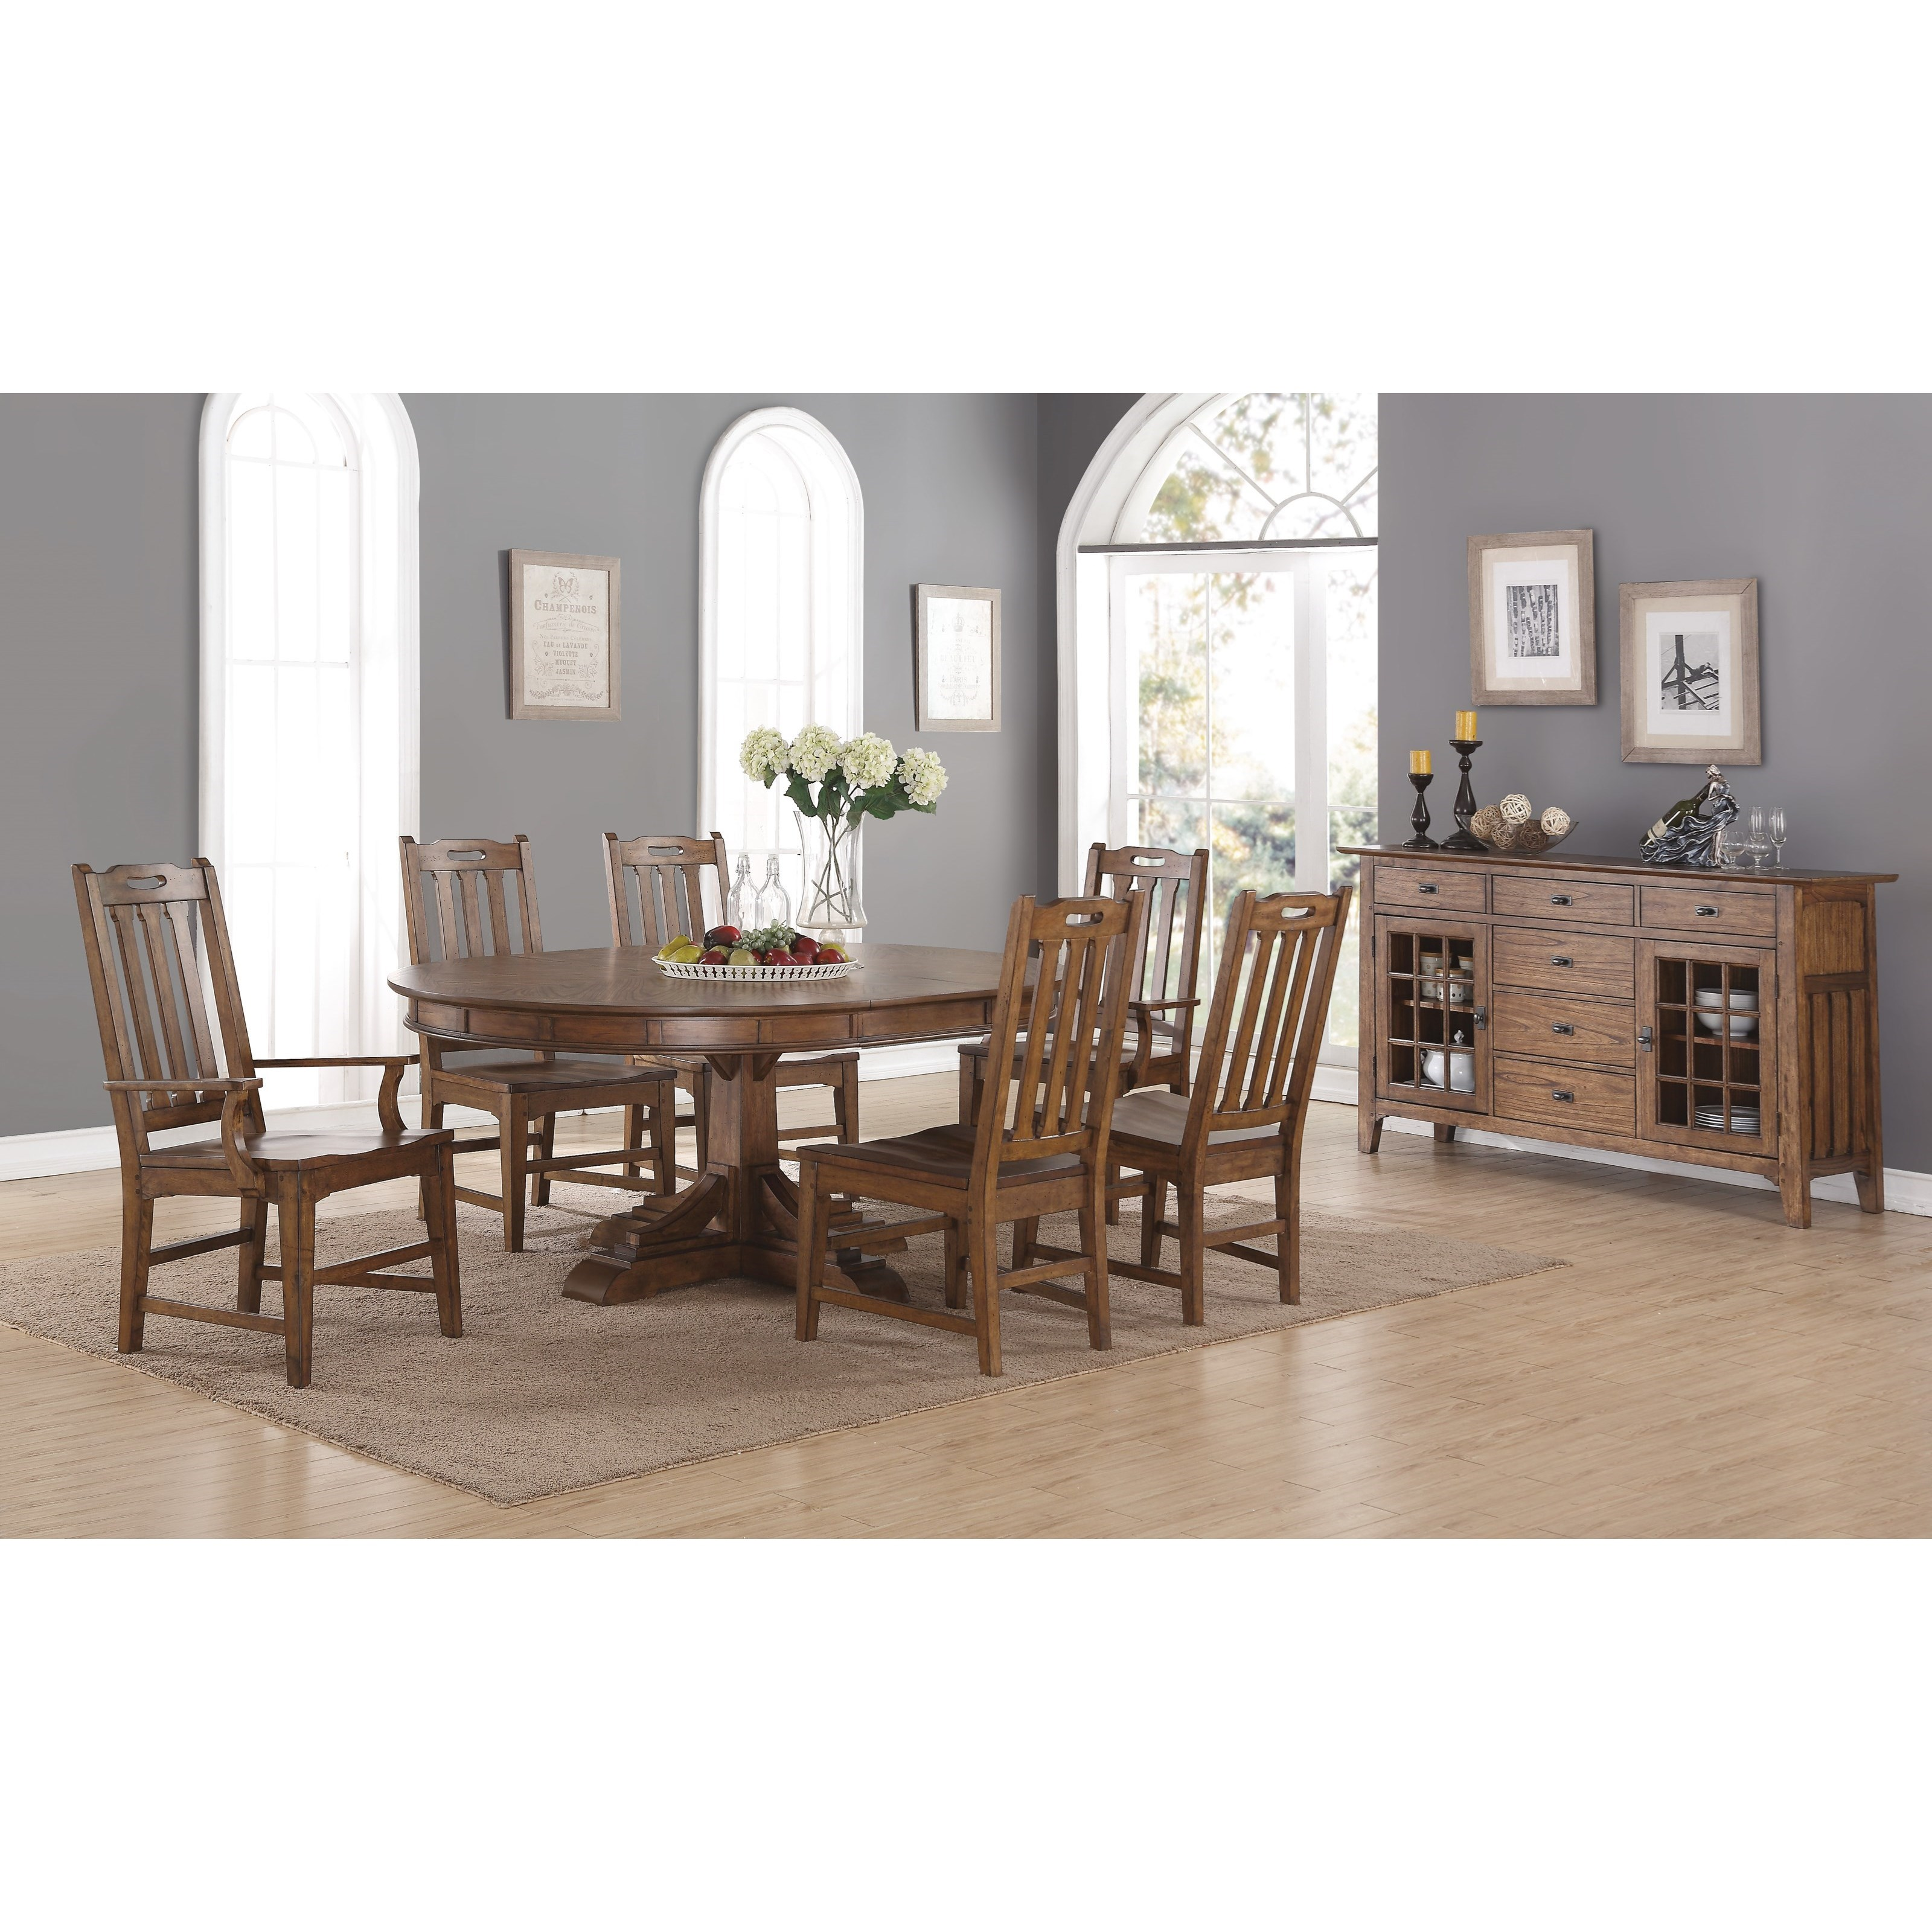 Flexsteel Wynwood Collection Sonora Formal Dining Room Group - Item Number: W1134 Dining Room Group 4